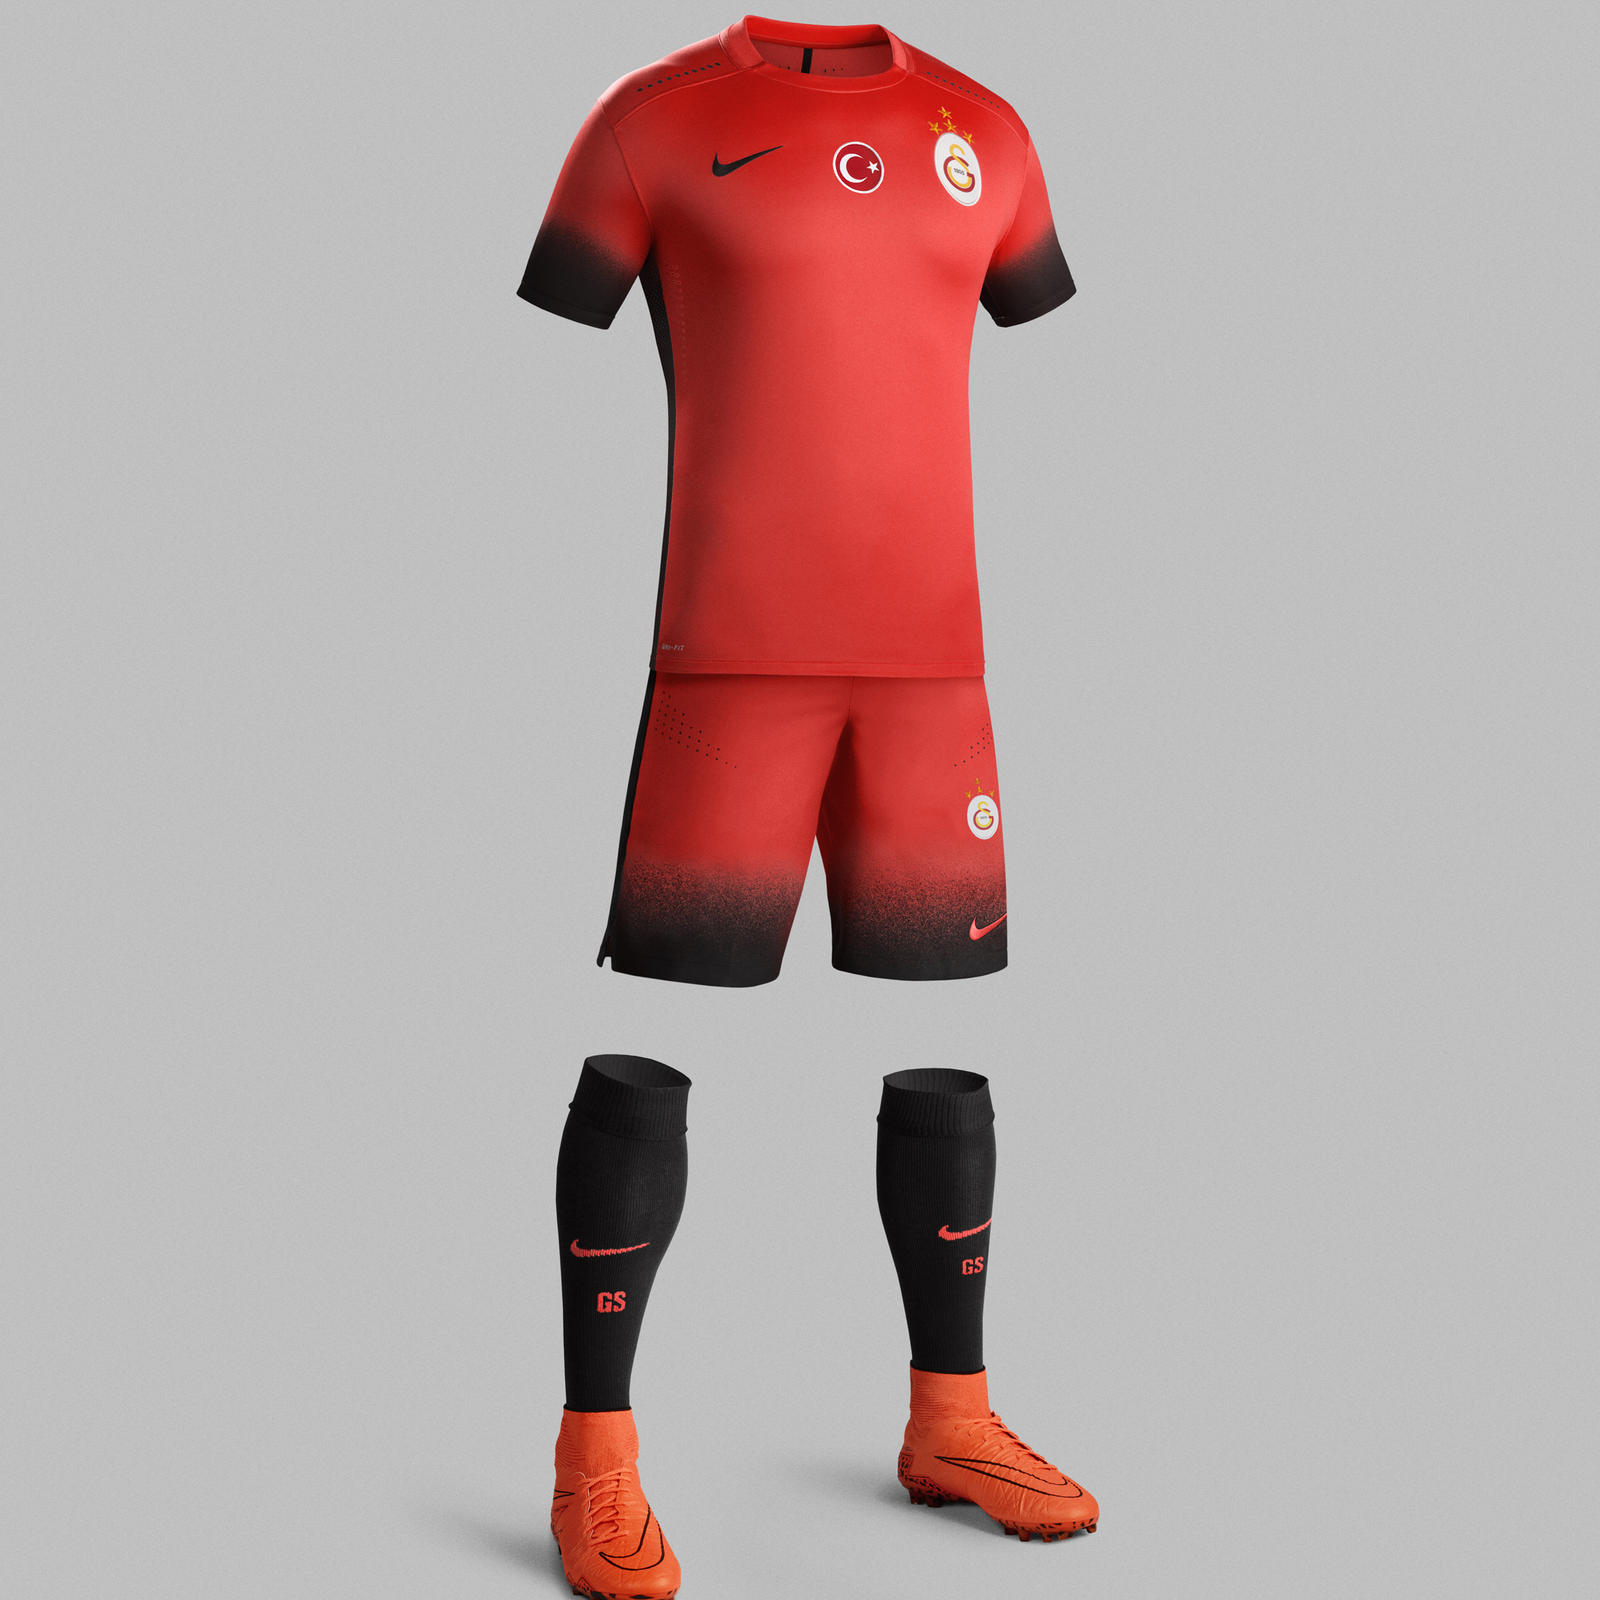 Nike_Galatasaray_Night_rising_Chrest_Full_Body_square_1600.jpg?1442351661